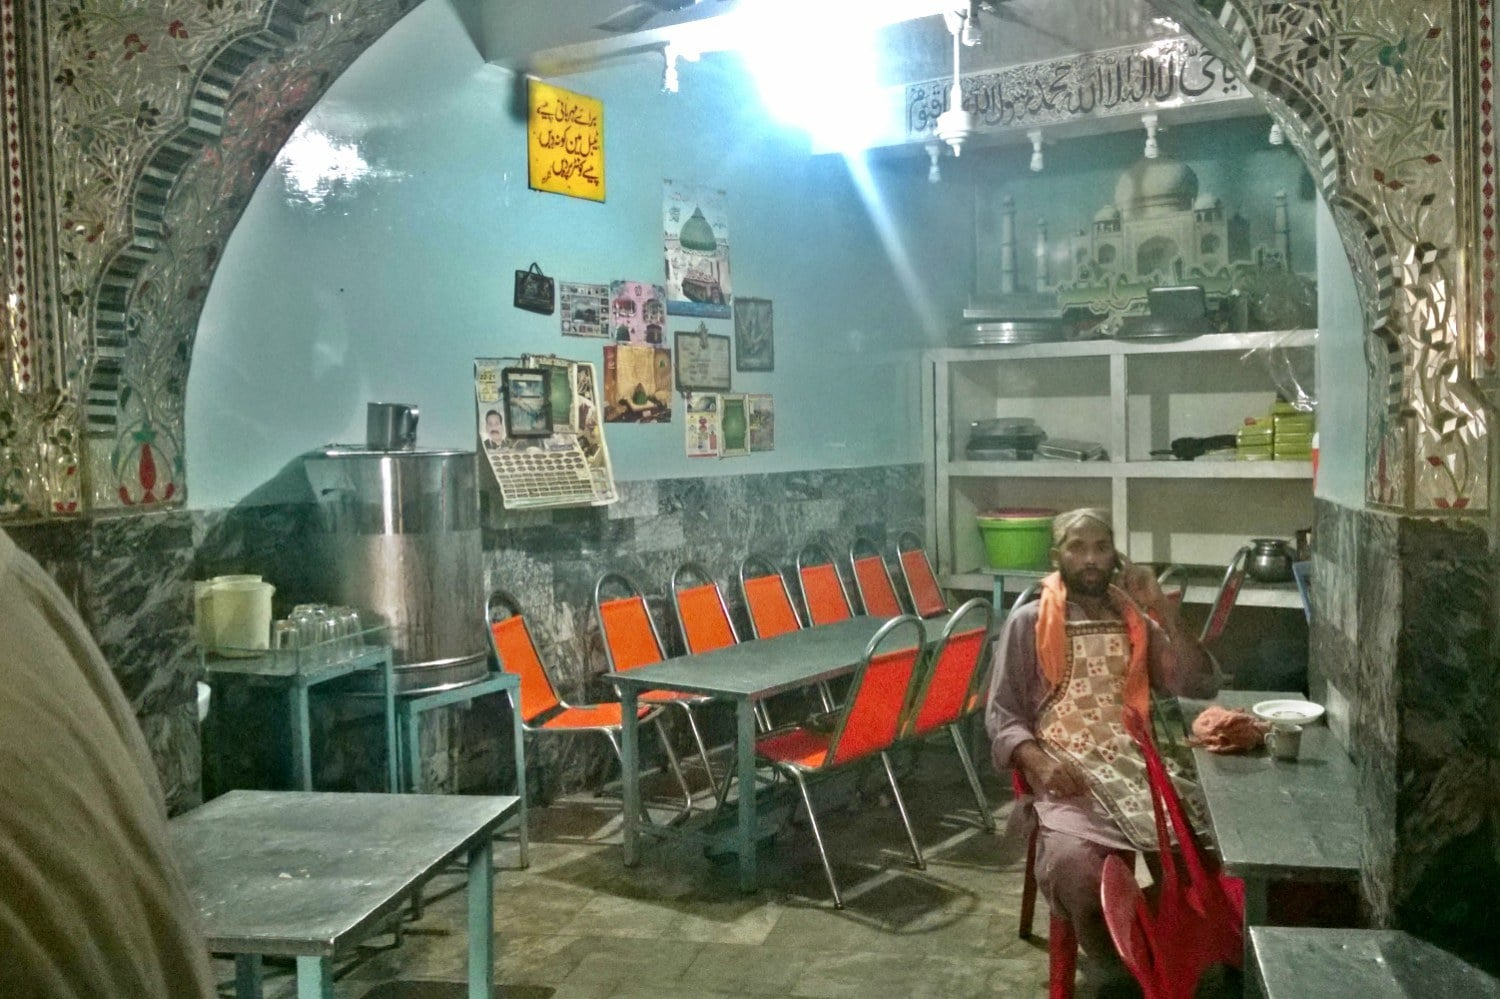 The interior of Taj Mahal sweets is dotted with pictures of shrines